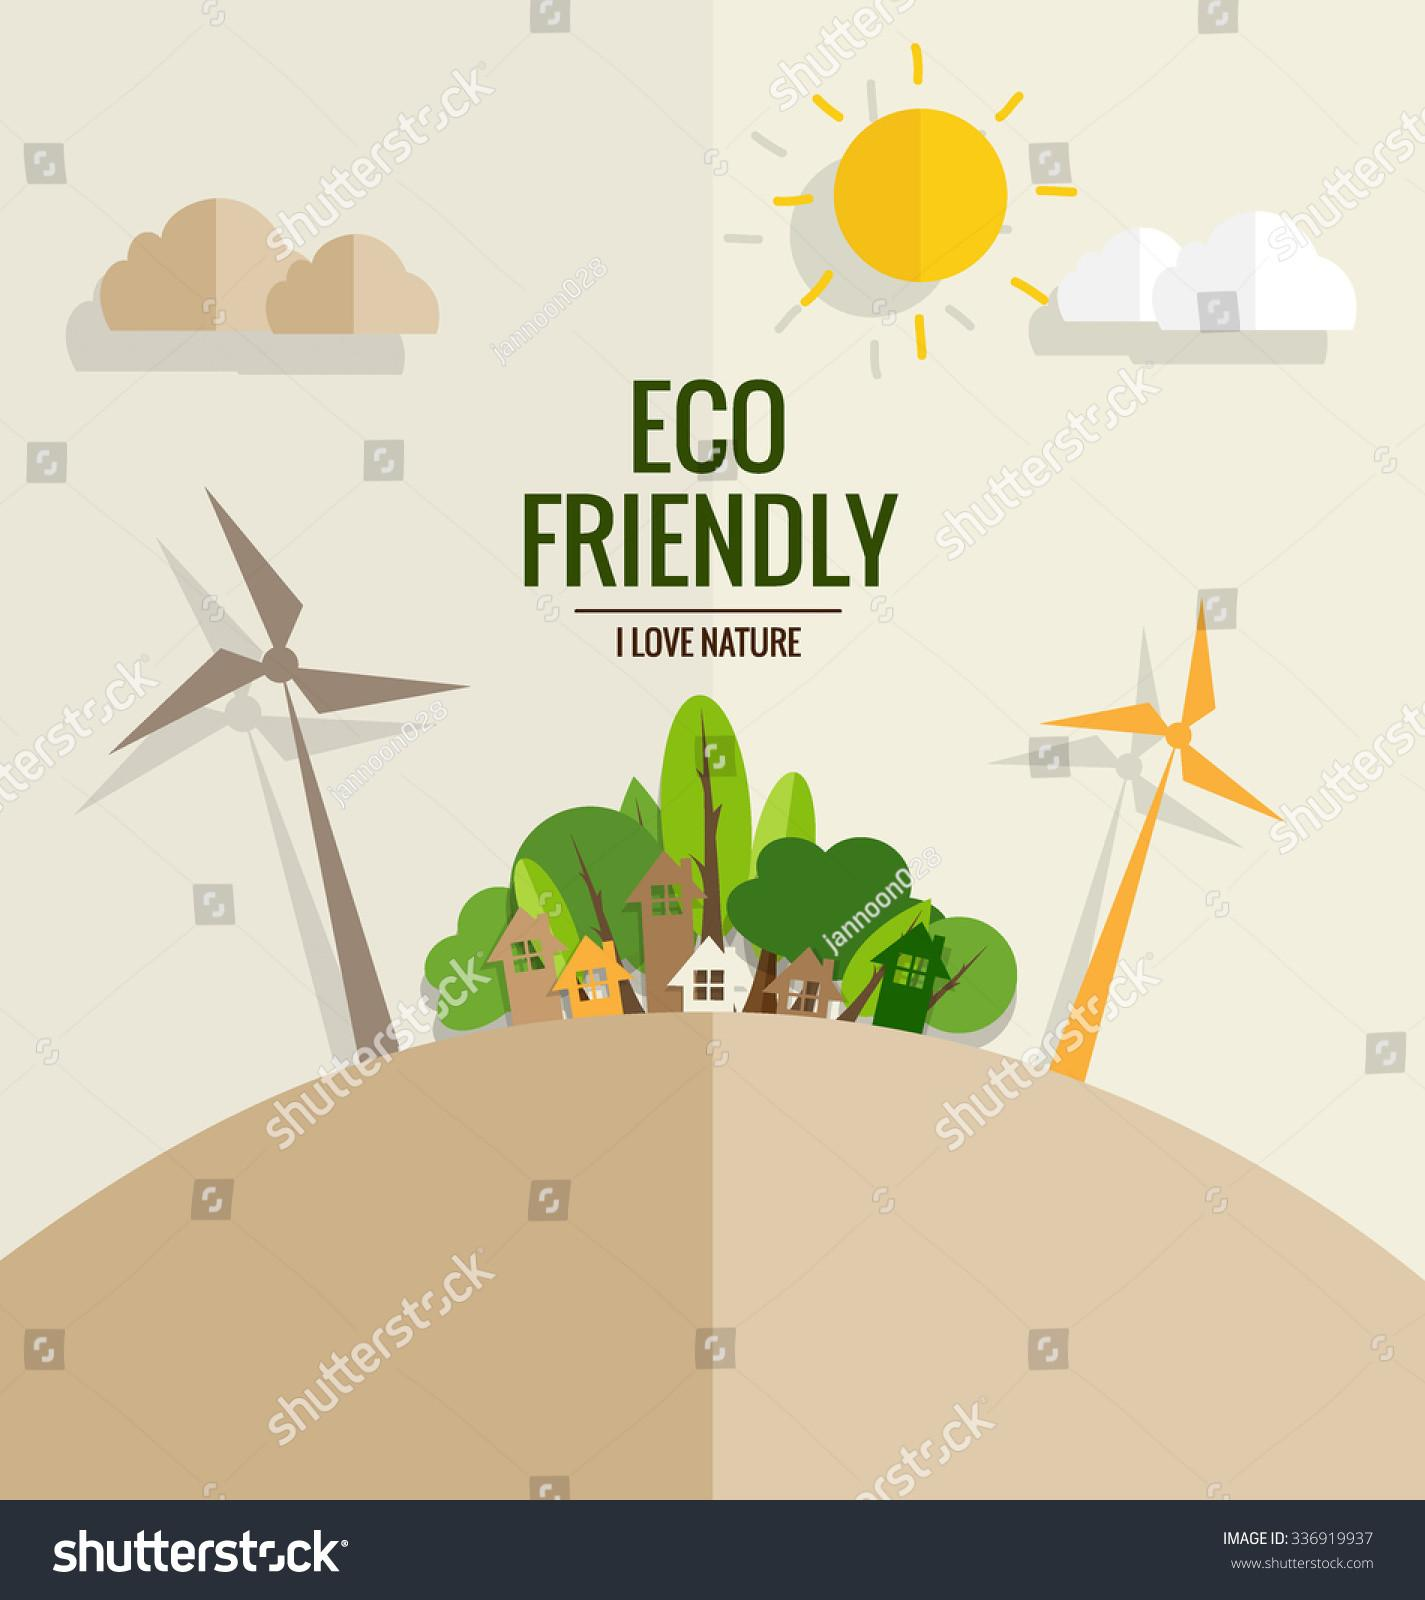 Eco Friendly Ecology Concept Tree Vector